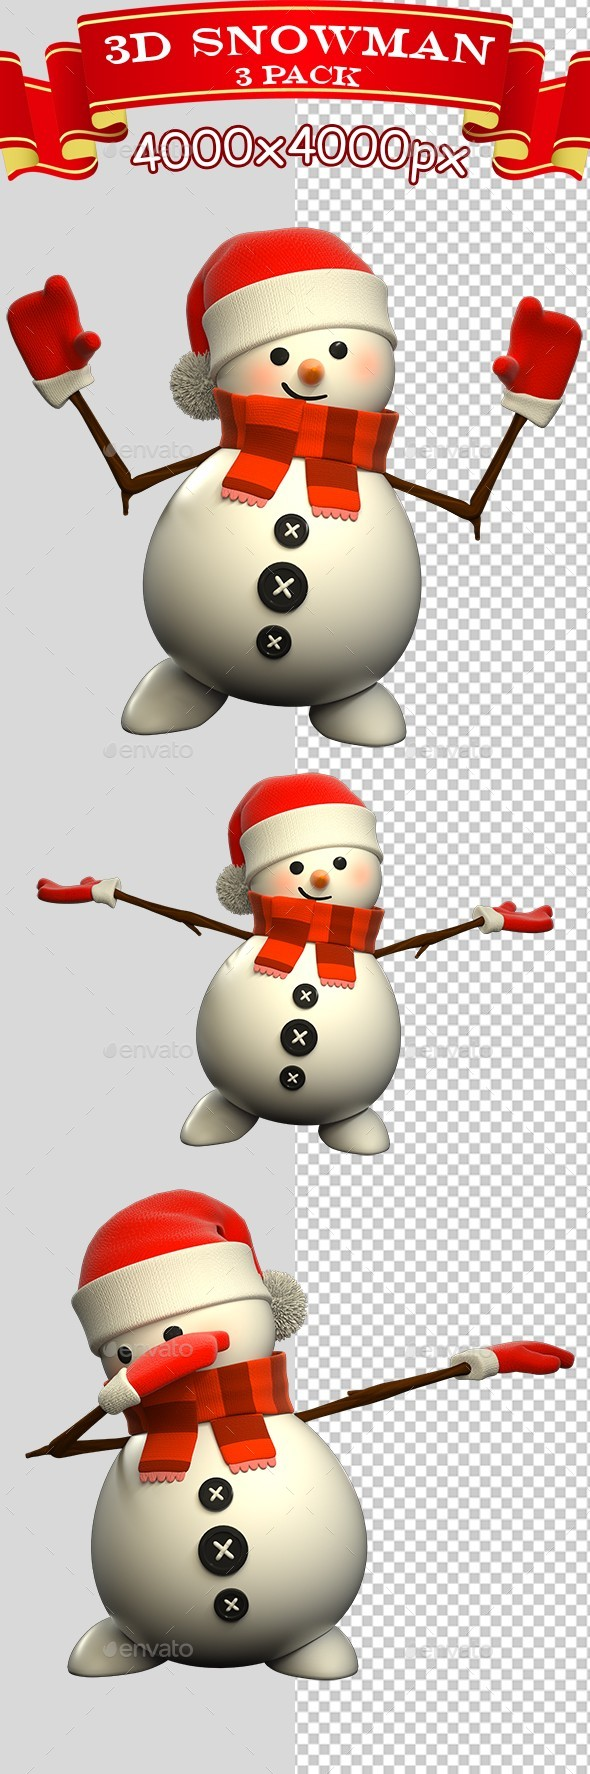 GraphicRiver 3D Snowman Standing 3 Pack 21055014